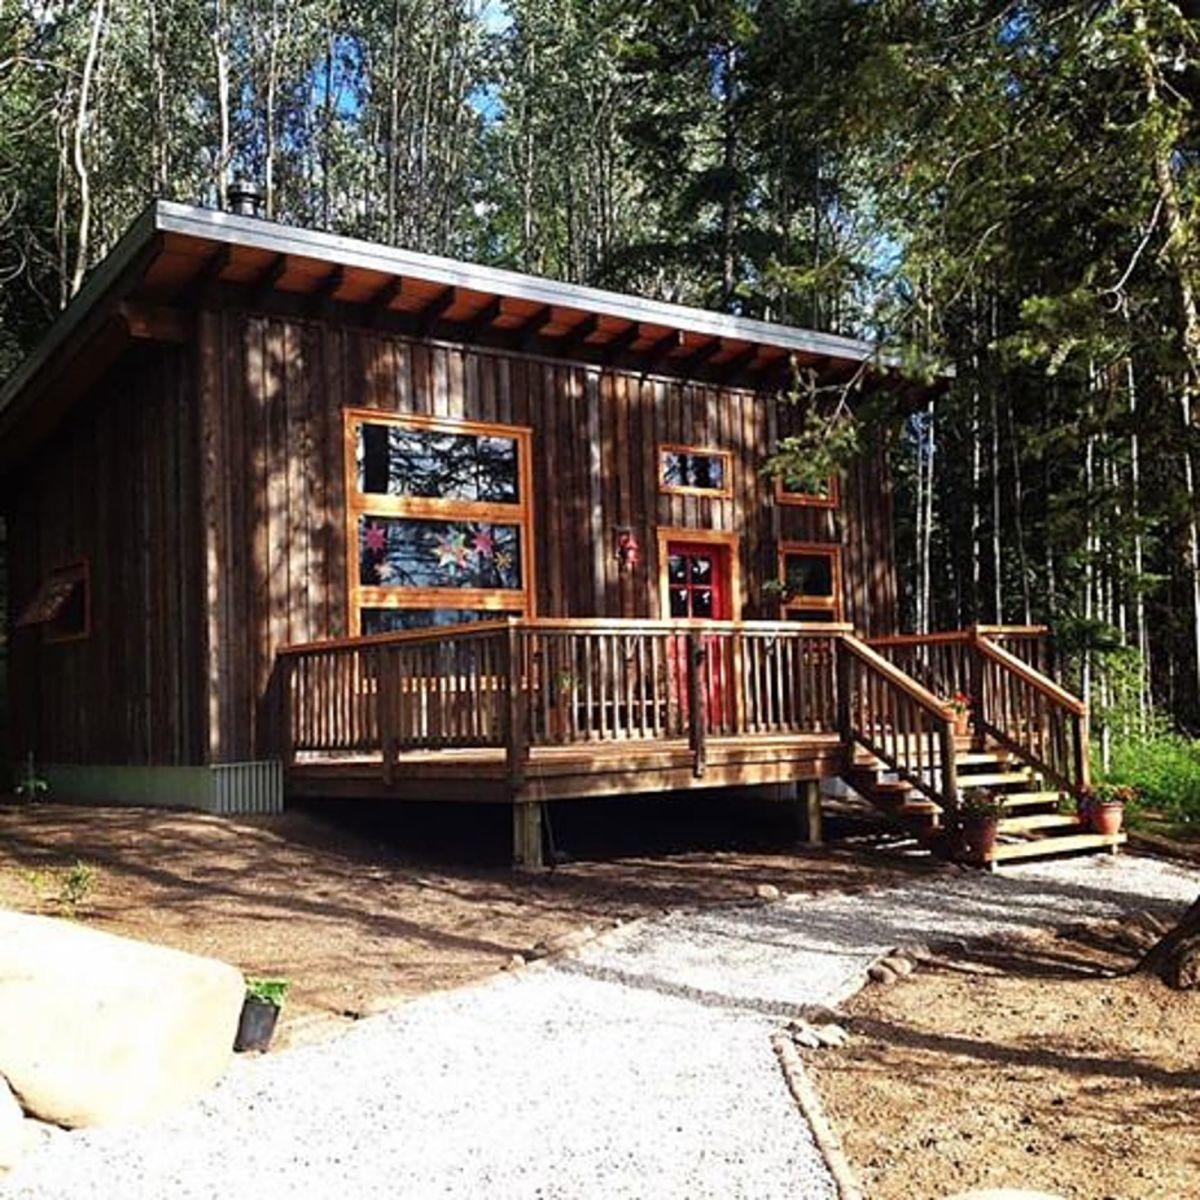 Canada 150 Small Home Designs: Little House In The Big Woods: Tiny Home On 5 Acres In